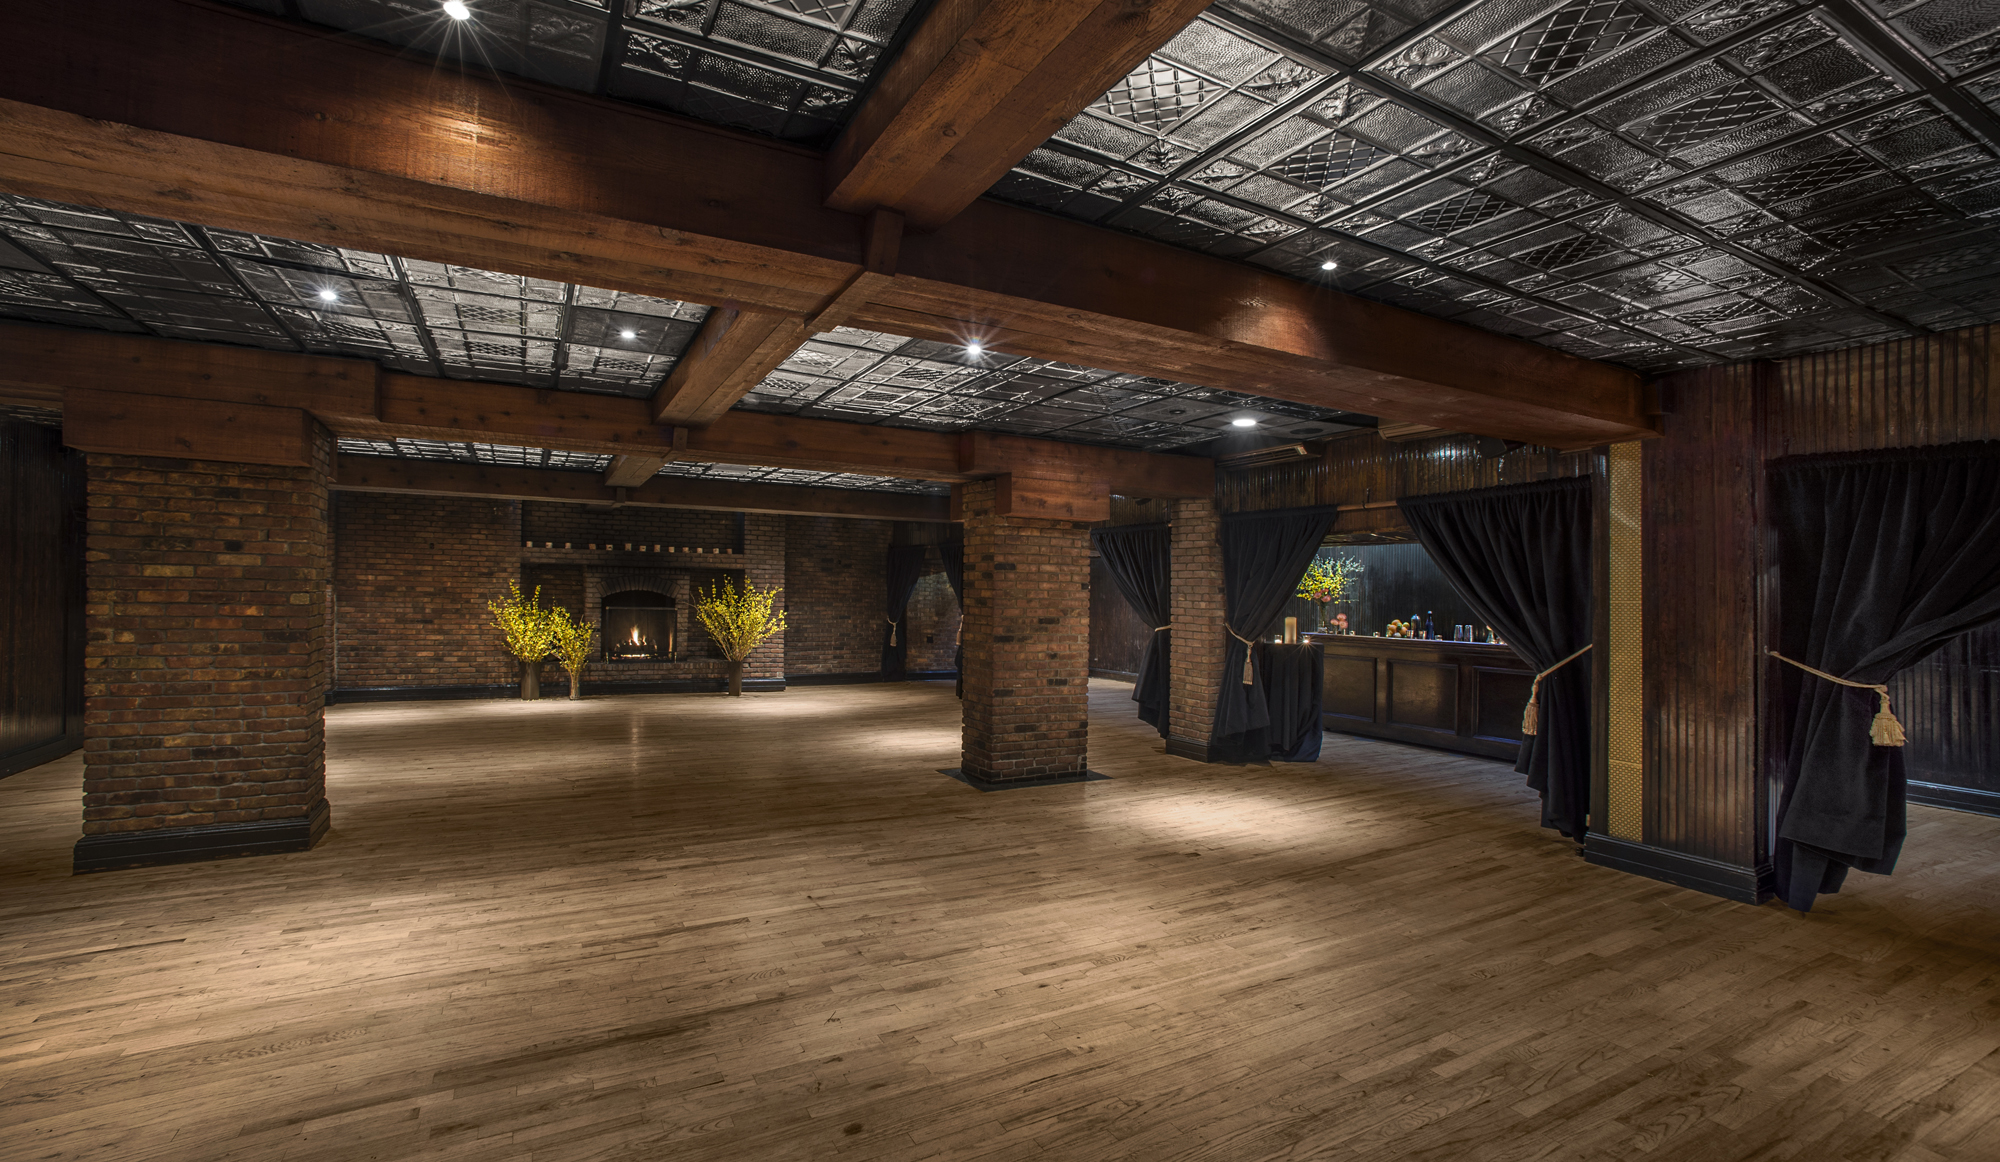 The Ballroom event space at The Fillmore Room in New York City, NYC, NY/NJ Area